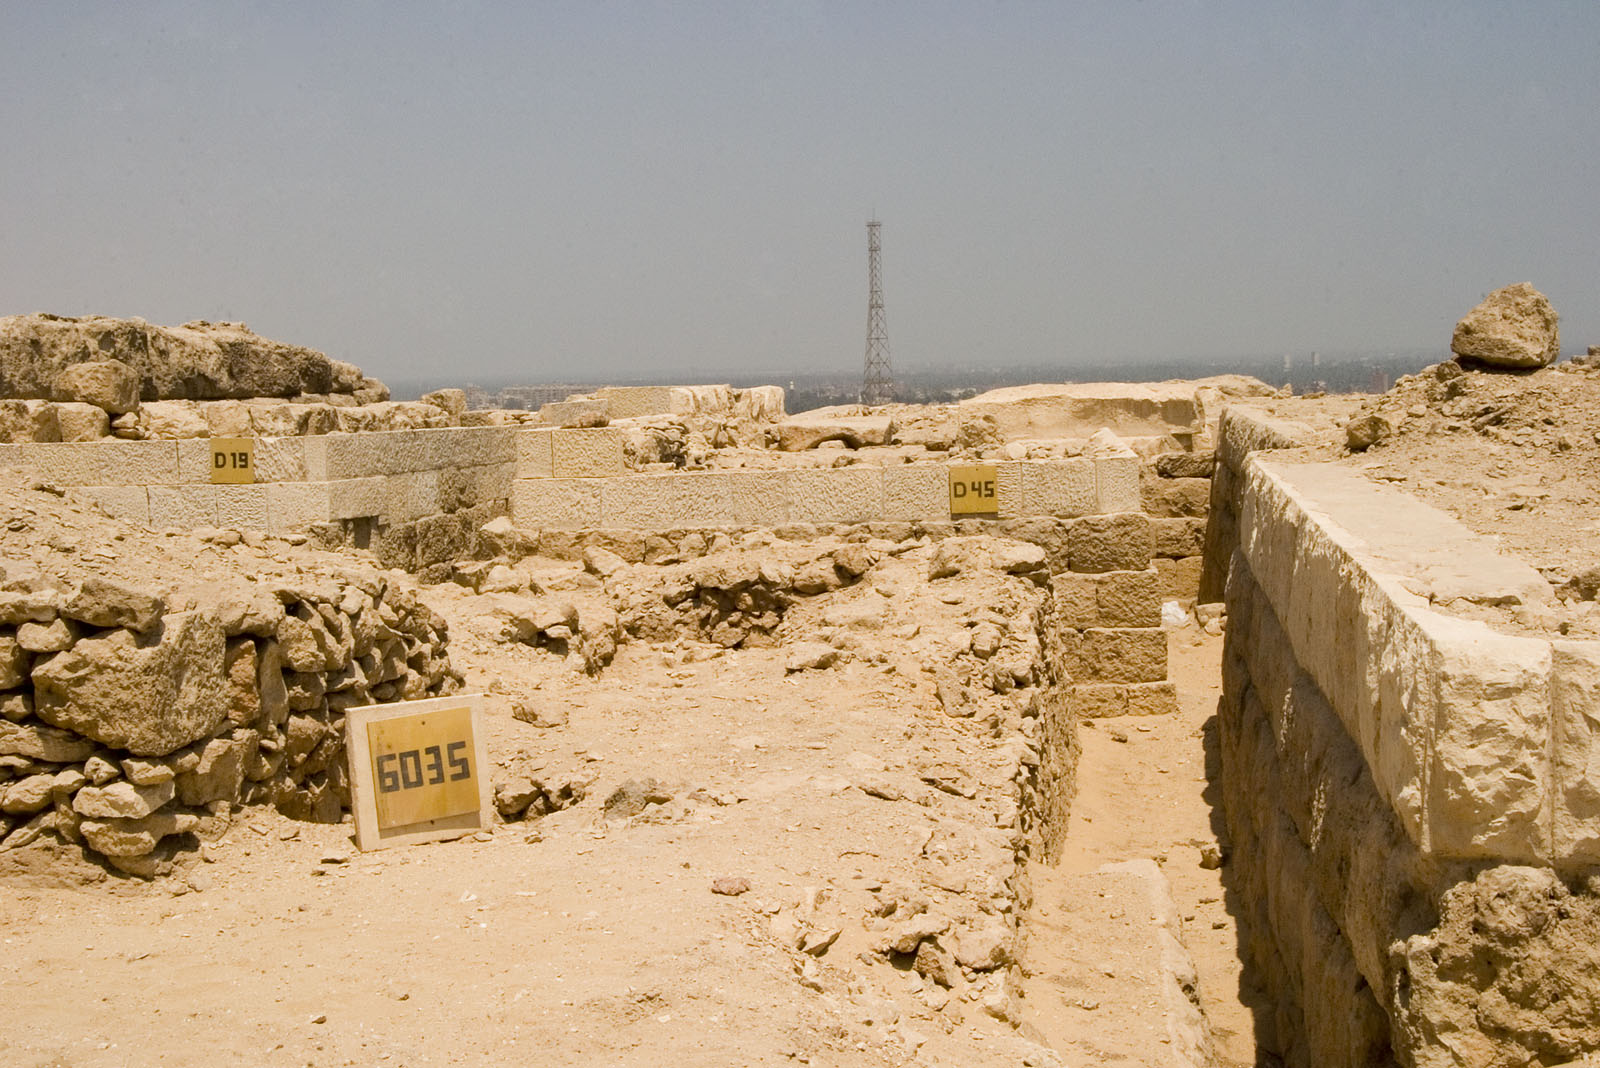 Western Cemetery: Site: Giza; View: G 6035, D 45, D 19